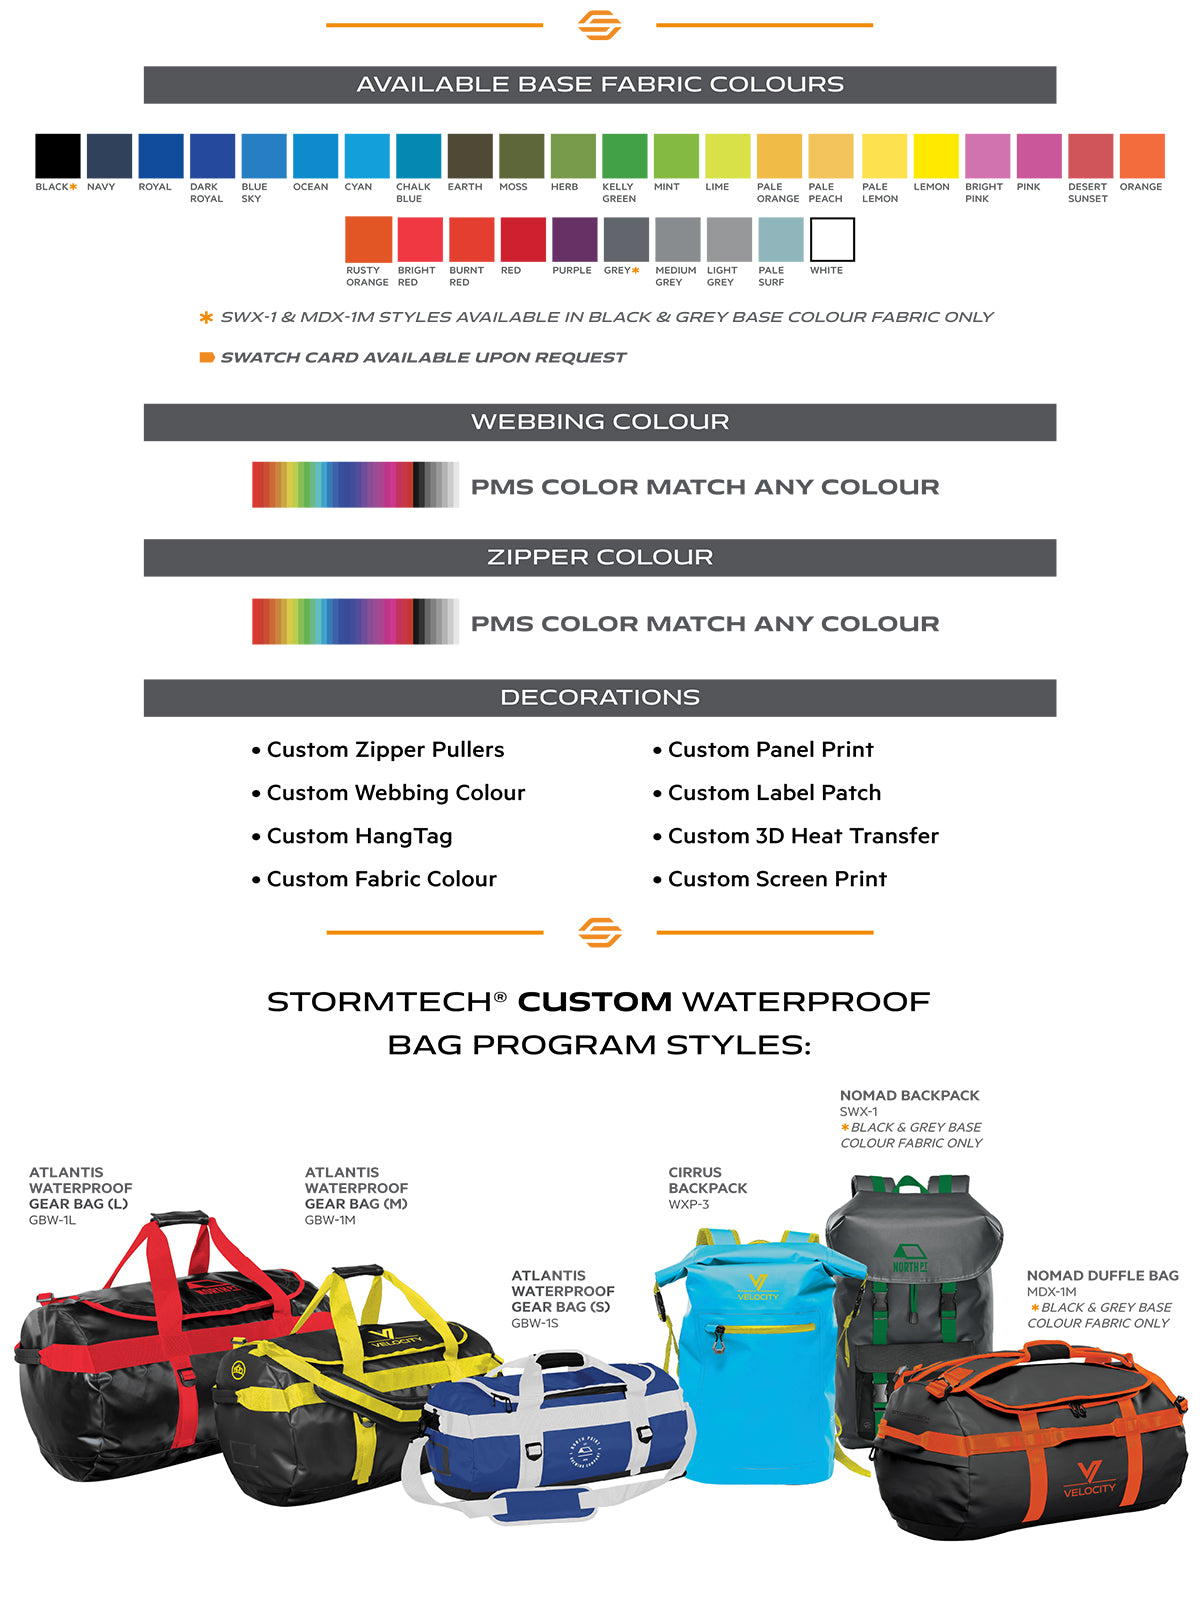 Custom Waterproof Bags - Content